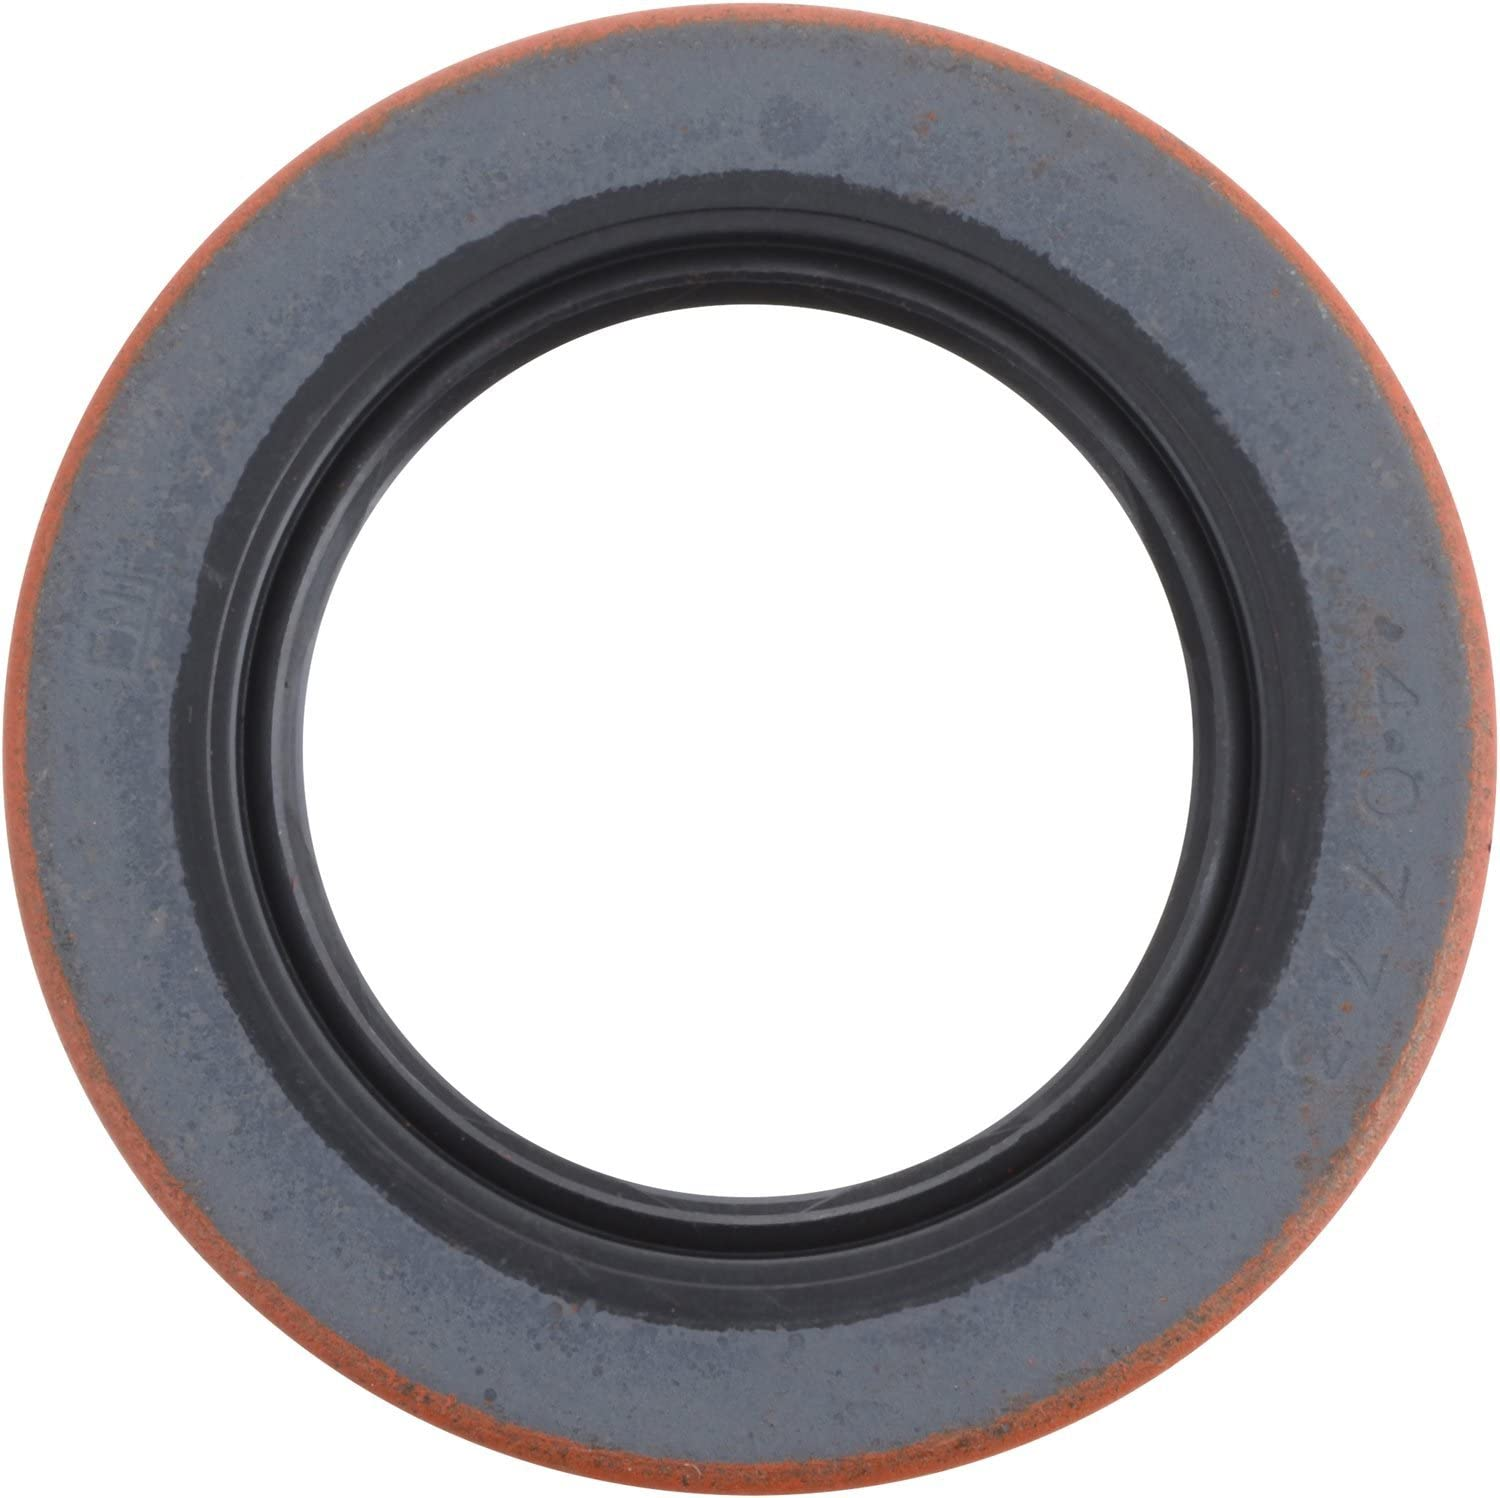 Spicer 2017426 Axle Shaft Seal